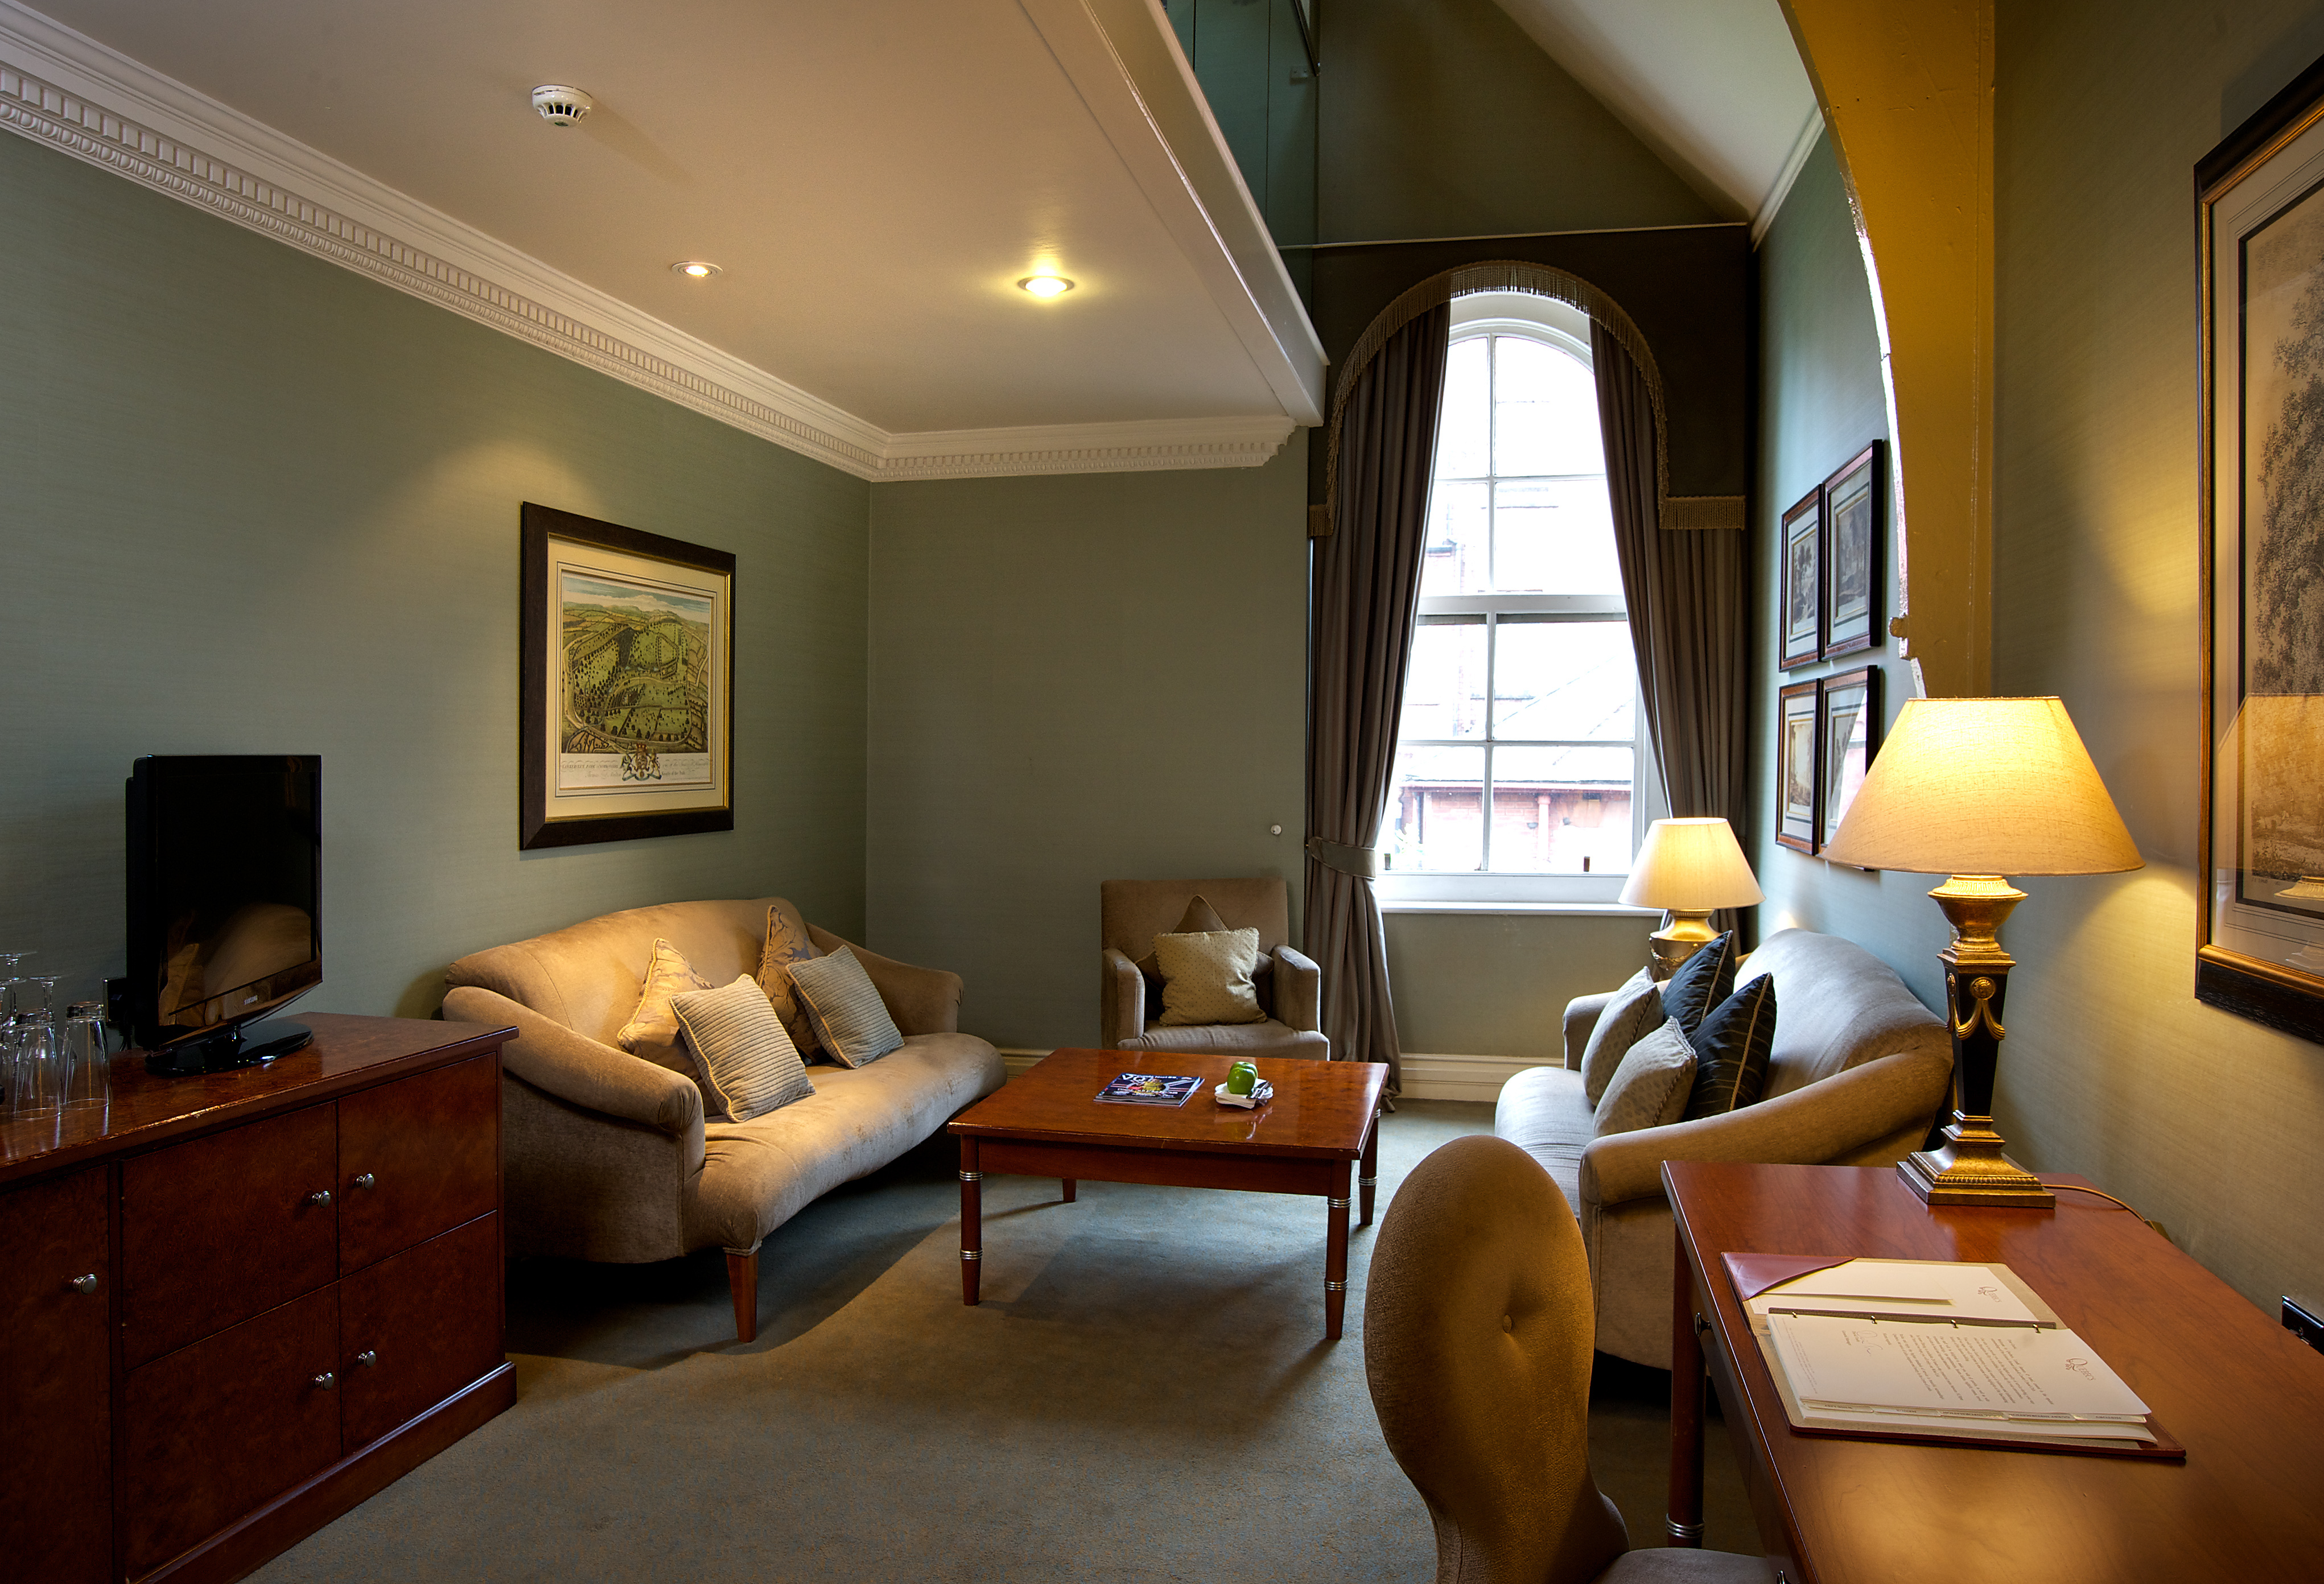 The Chorley & Connon Suite